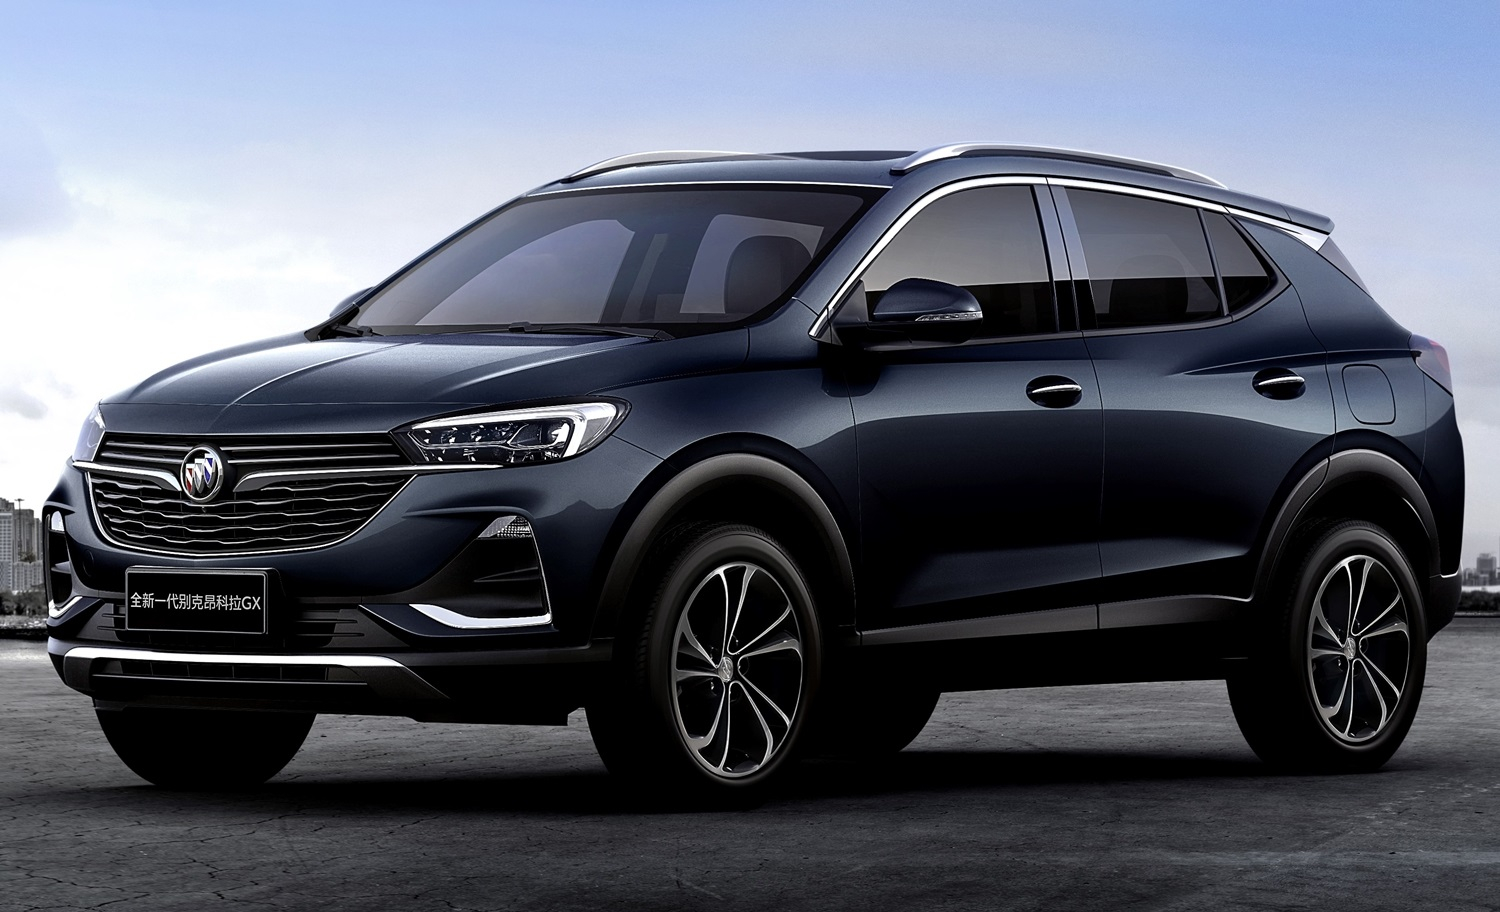 New Buick Encore Gx Images Released: Photo Gallery | Gm 2022 Buick Encore Cost, Build And Price, Engine